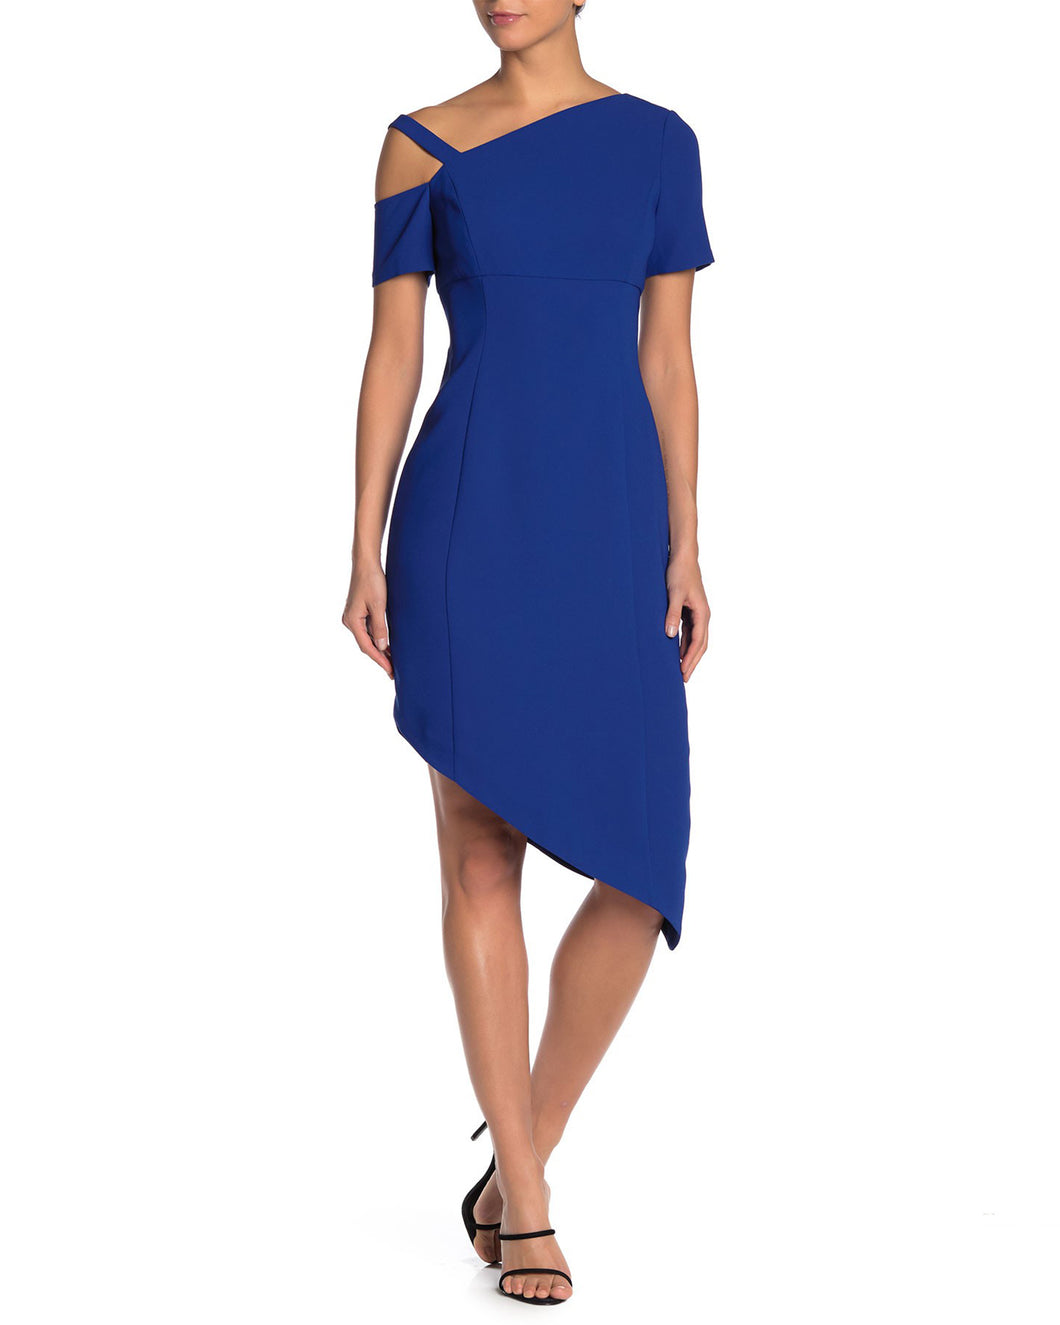 Asymmetric Crepe Dress - Shani Collection